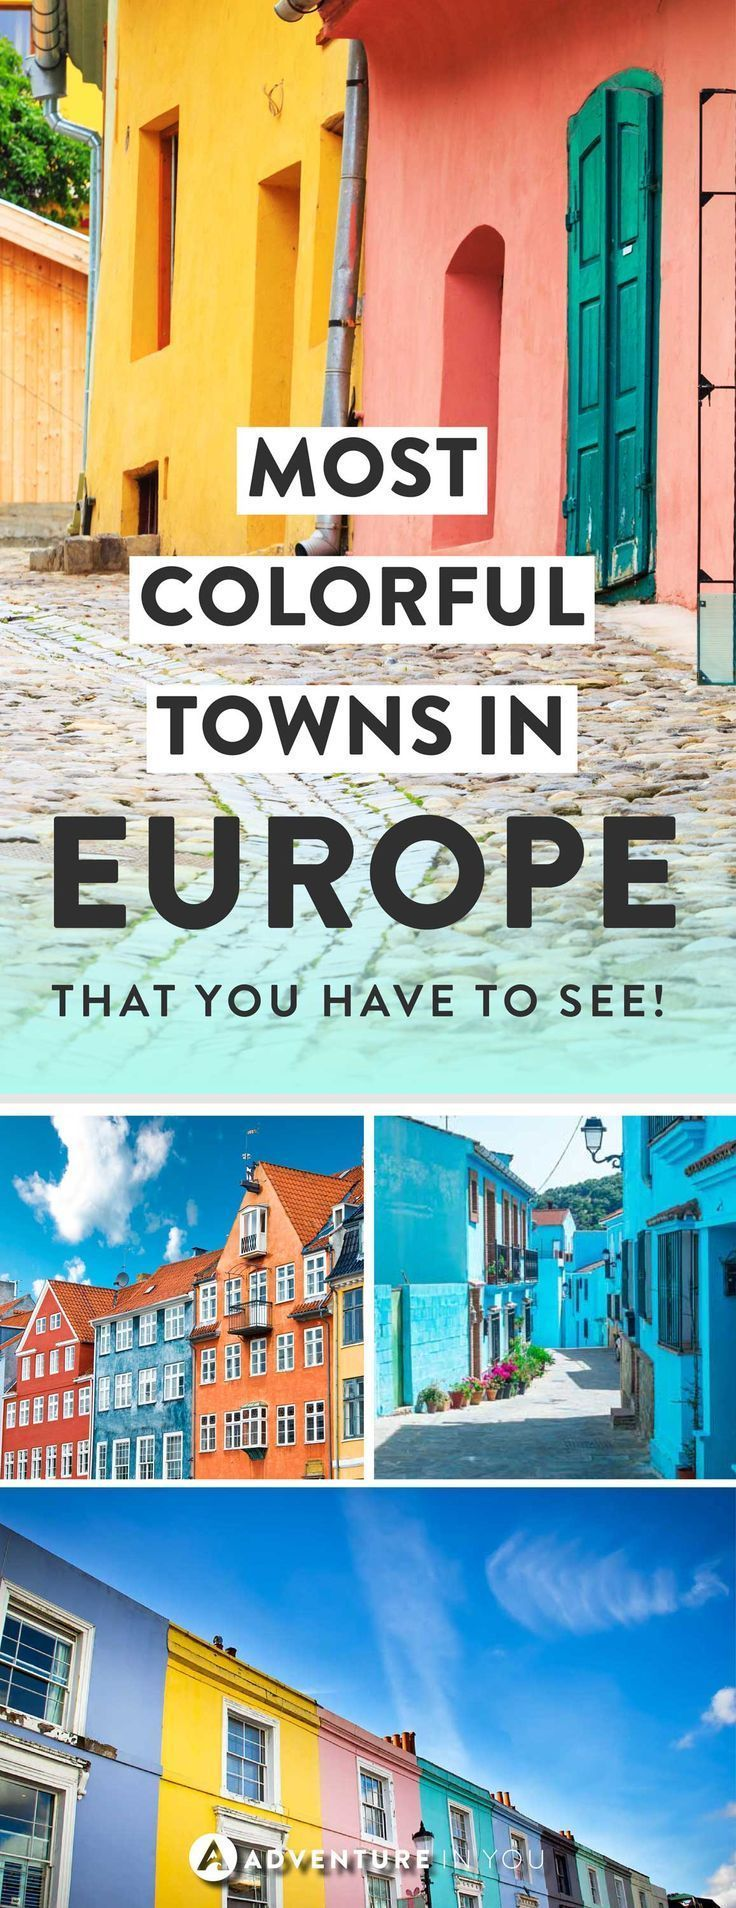 Best Colorobsessed Travel Images On Pinterest Travel Tips - The 7 best cities to buy property in europe